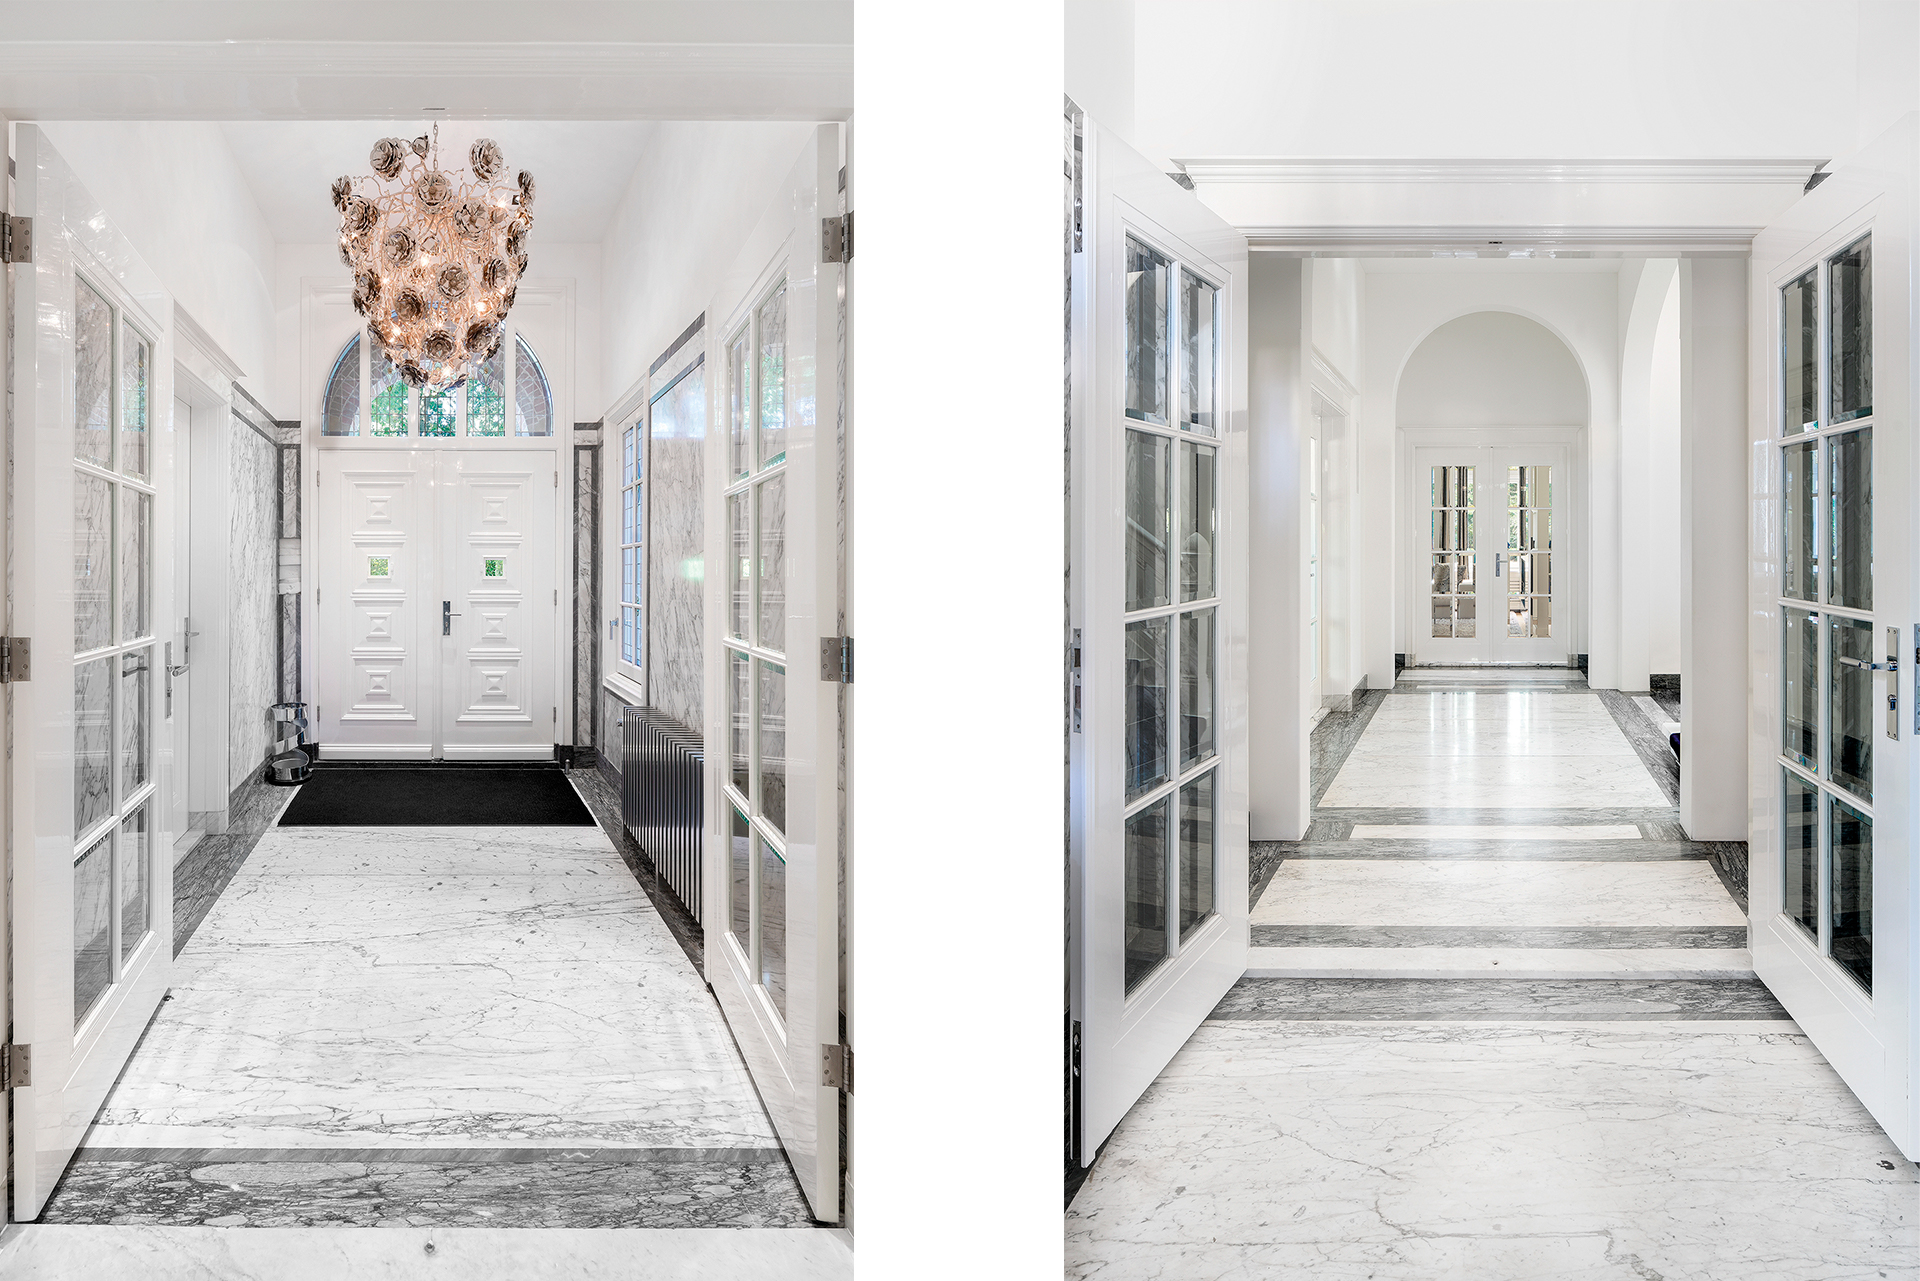 A long hallway with marble floors design chromed radiators and a designer chandelier above